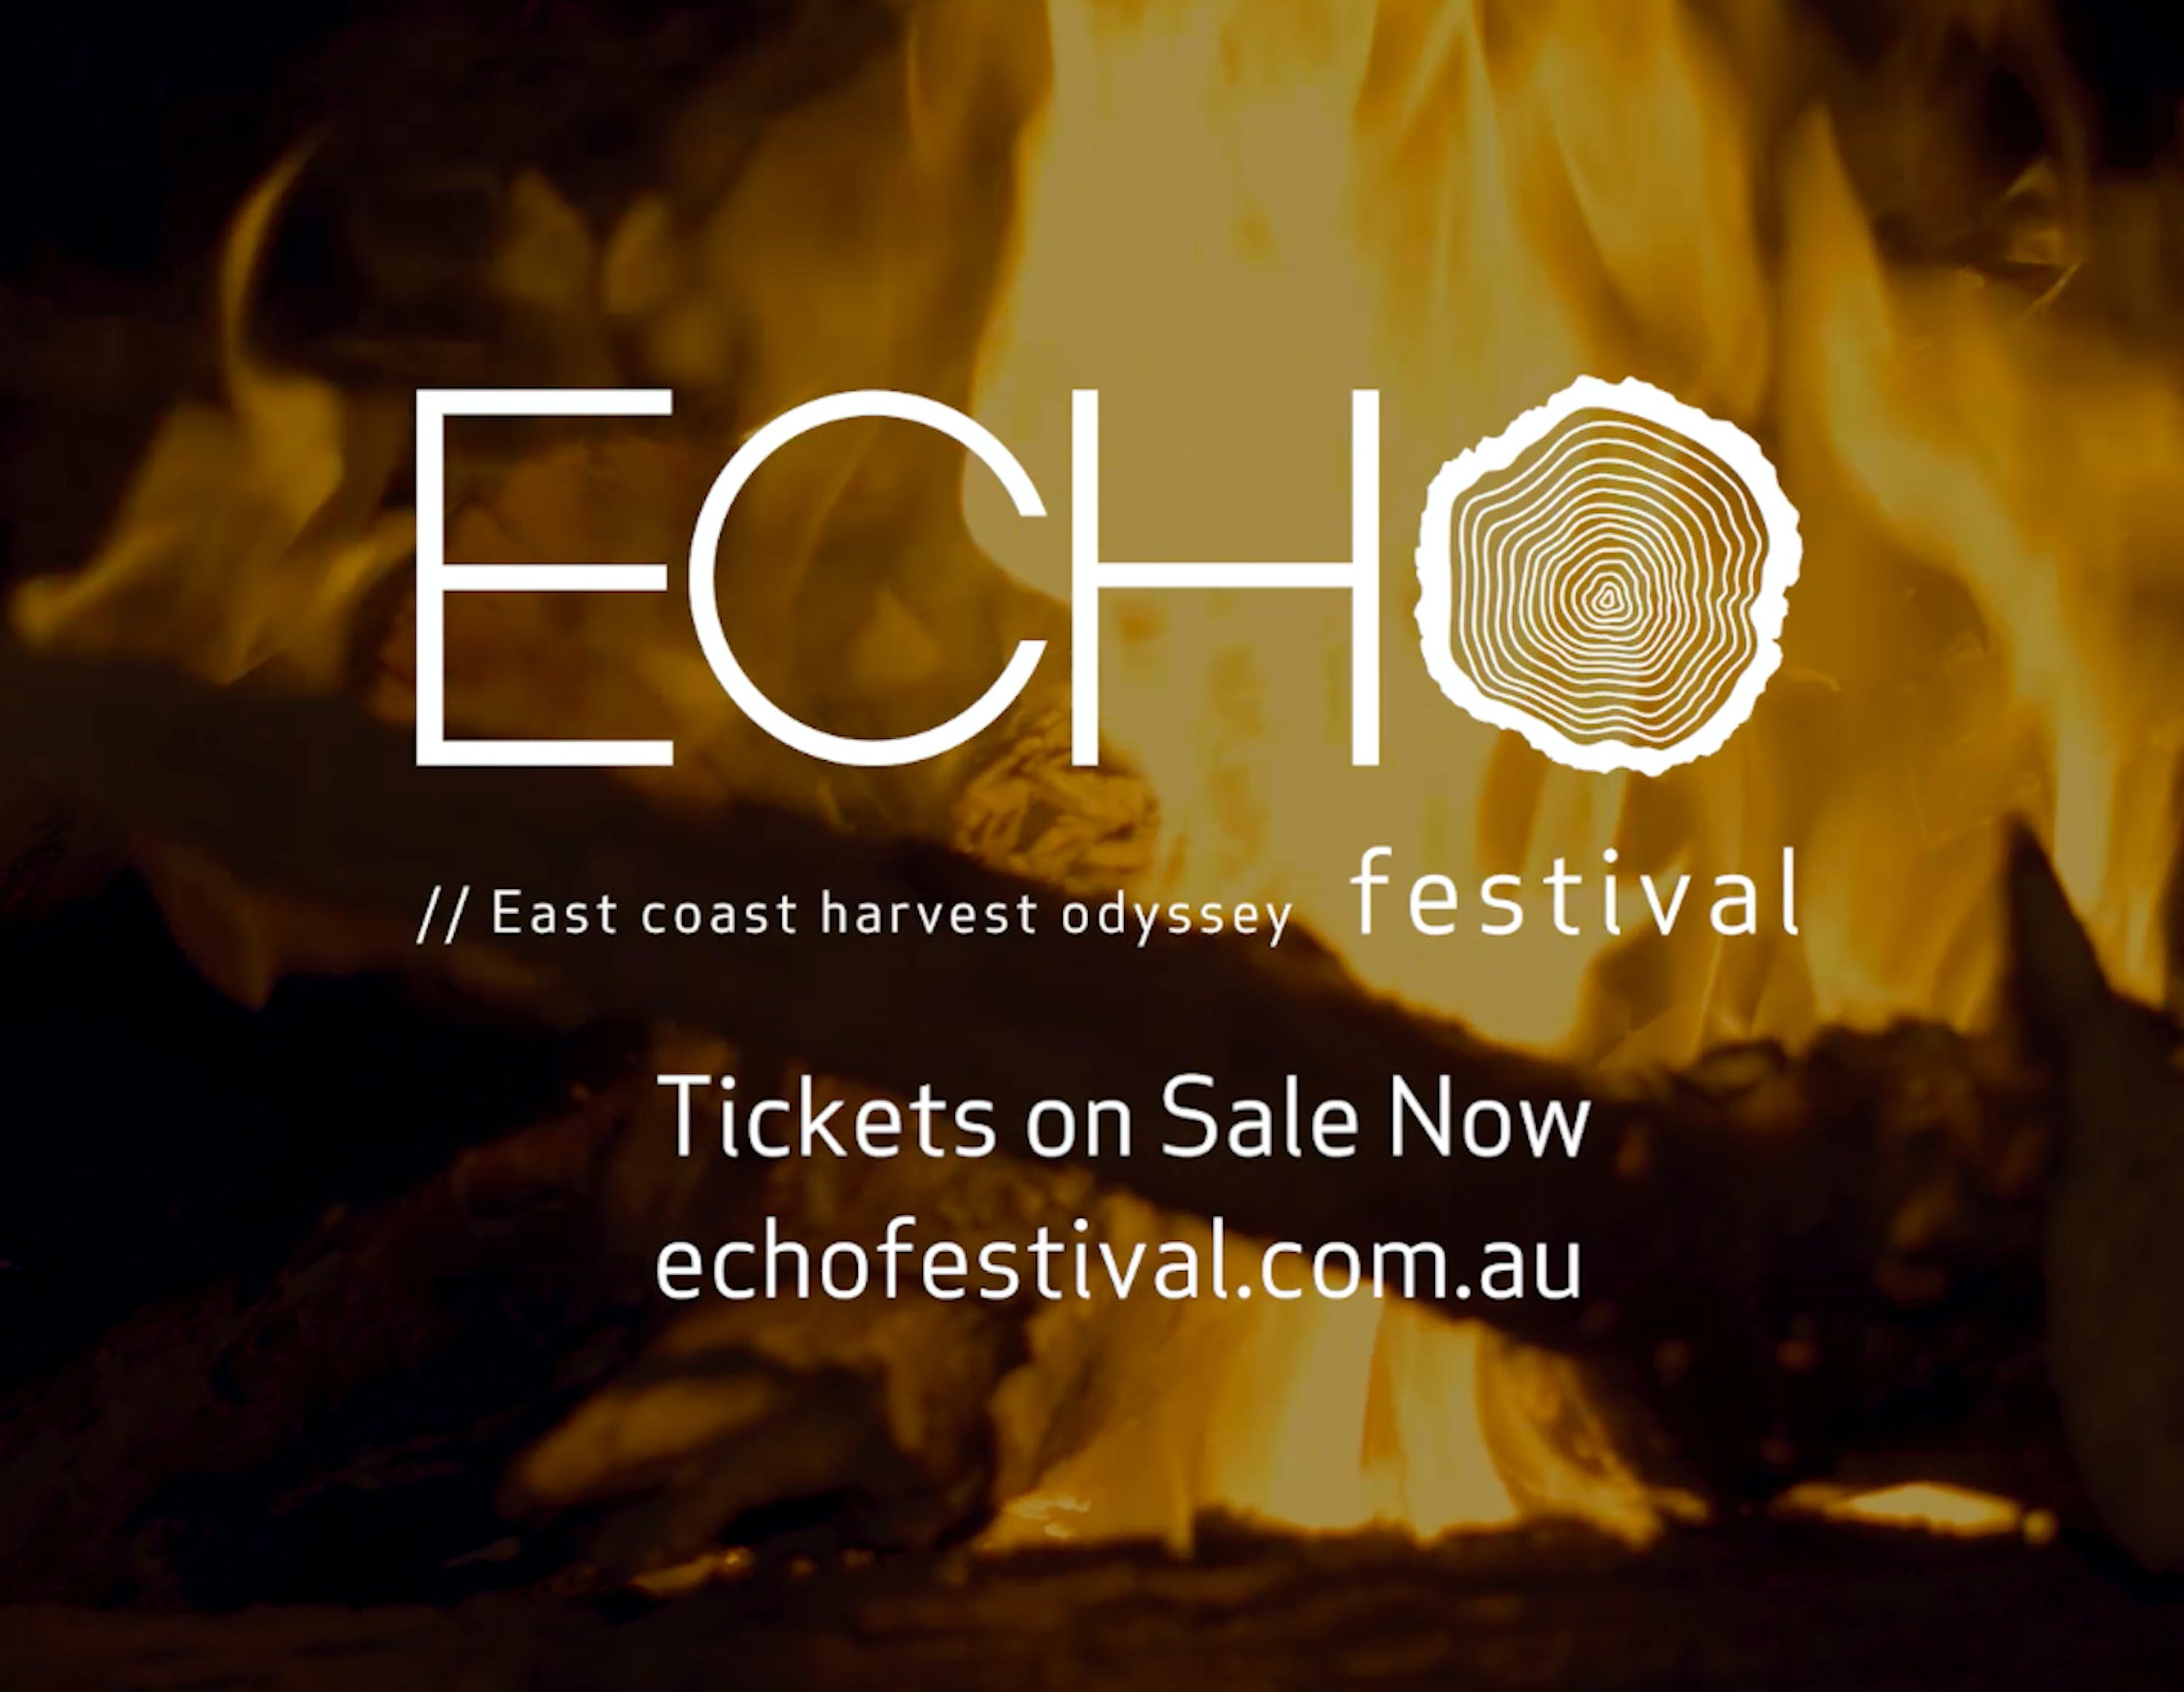 ECHO Festival - East Coast Harvest Odyssey 2021 - Wagga Wagga Accommodation